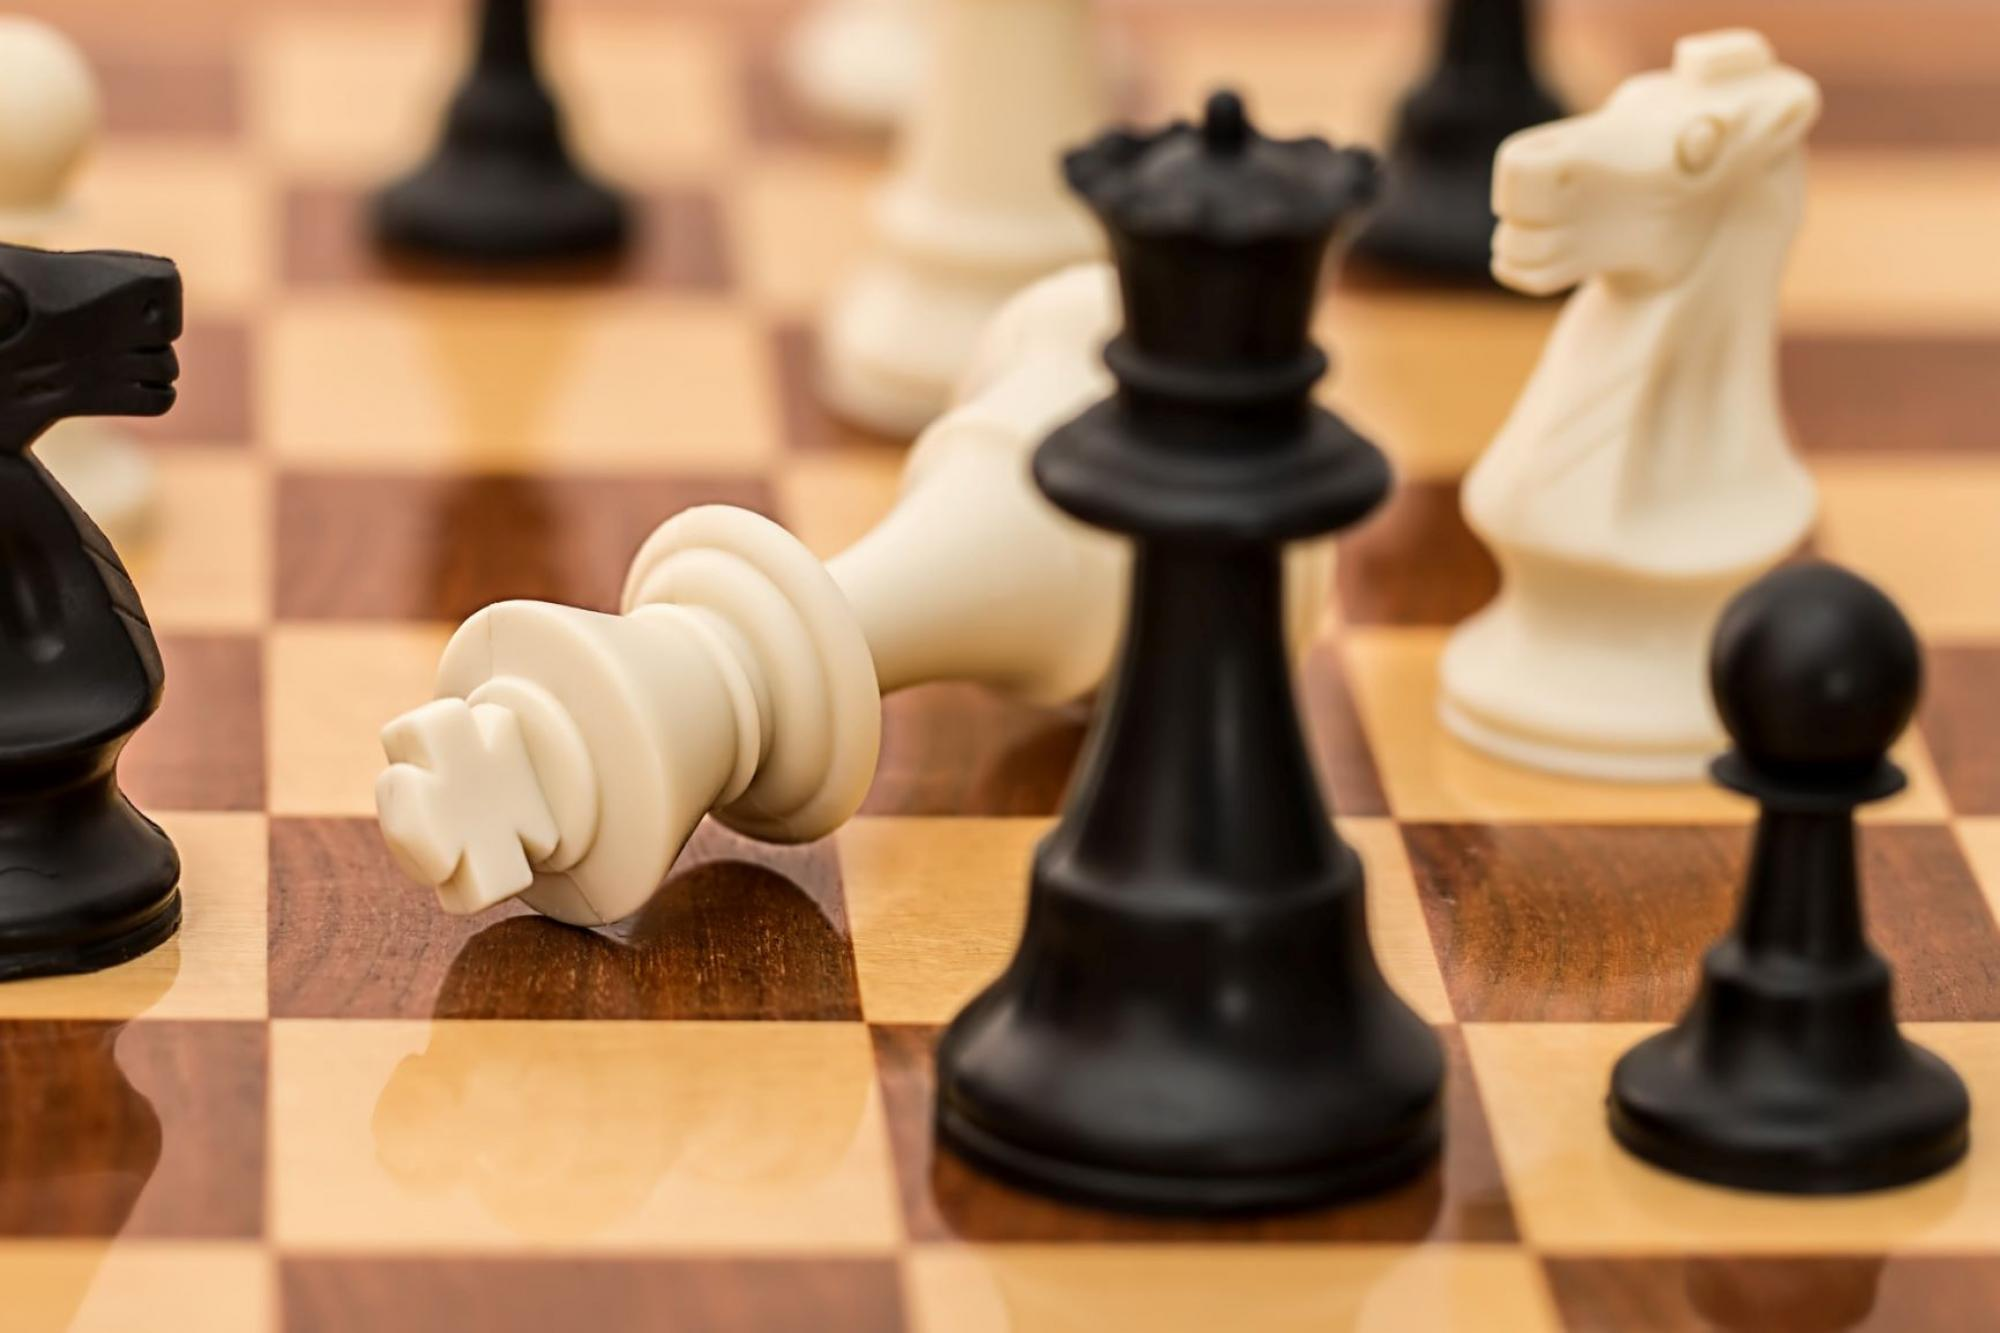 Pieces on chess board